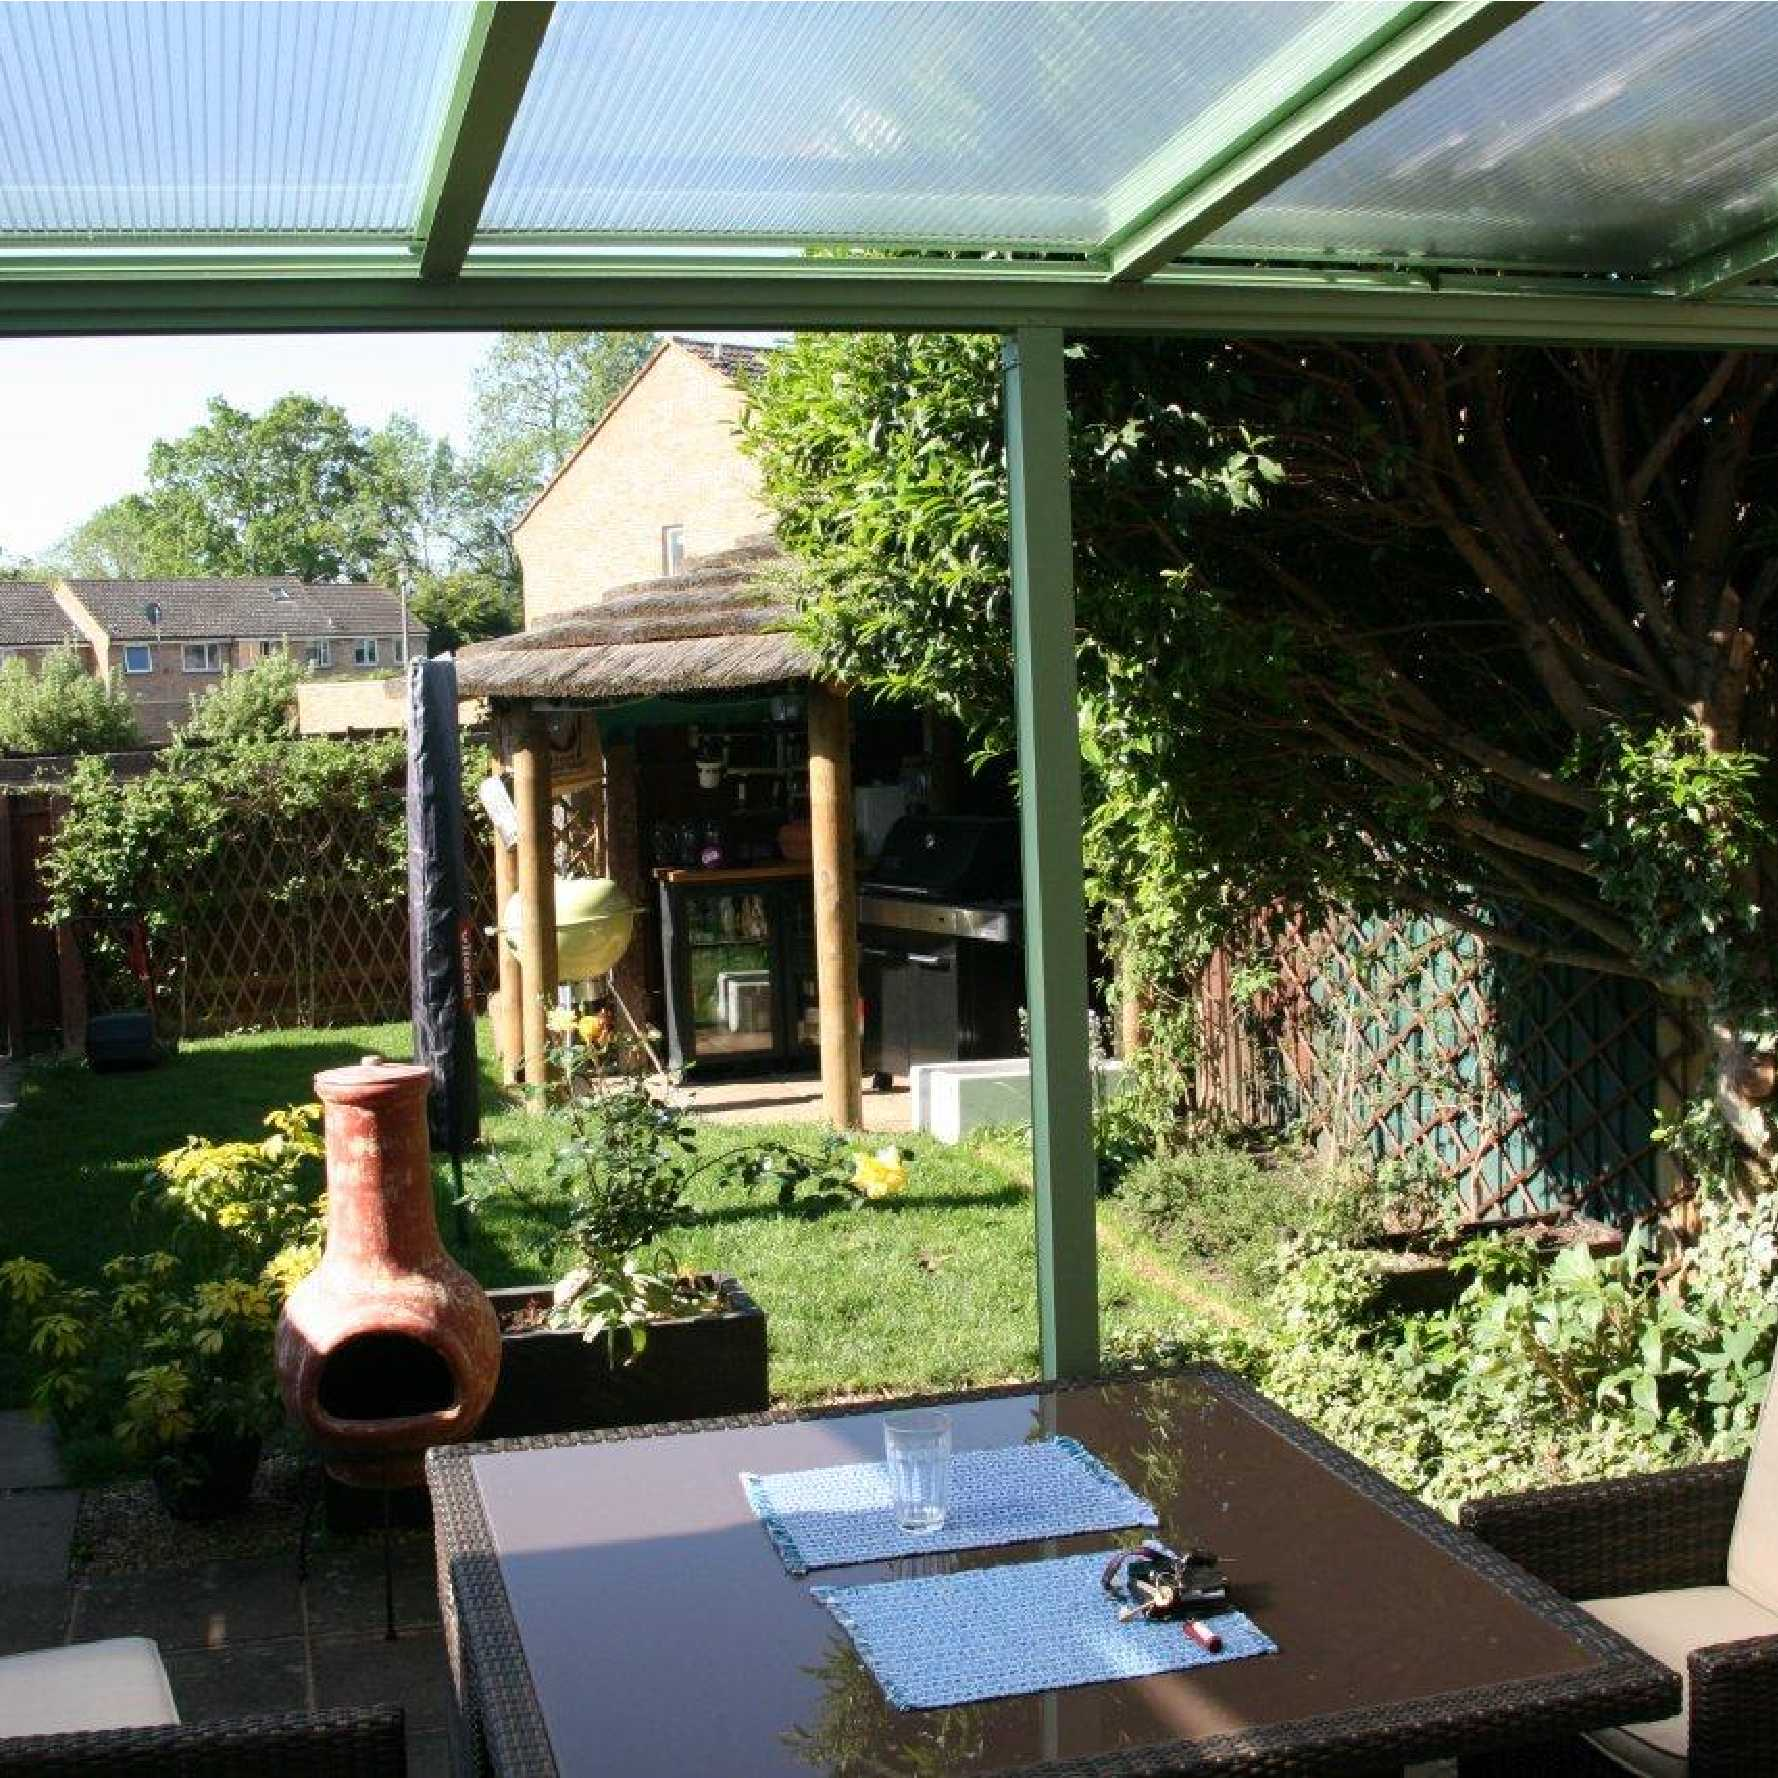 Affordable Omega Smart Lean-To Canopy with 16mm Polycarbonate Glazing - 7.4m (W) x 4.5m (P), (4) Supporting Posts